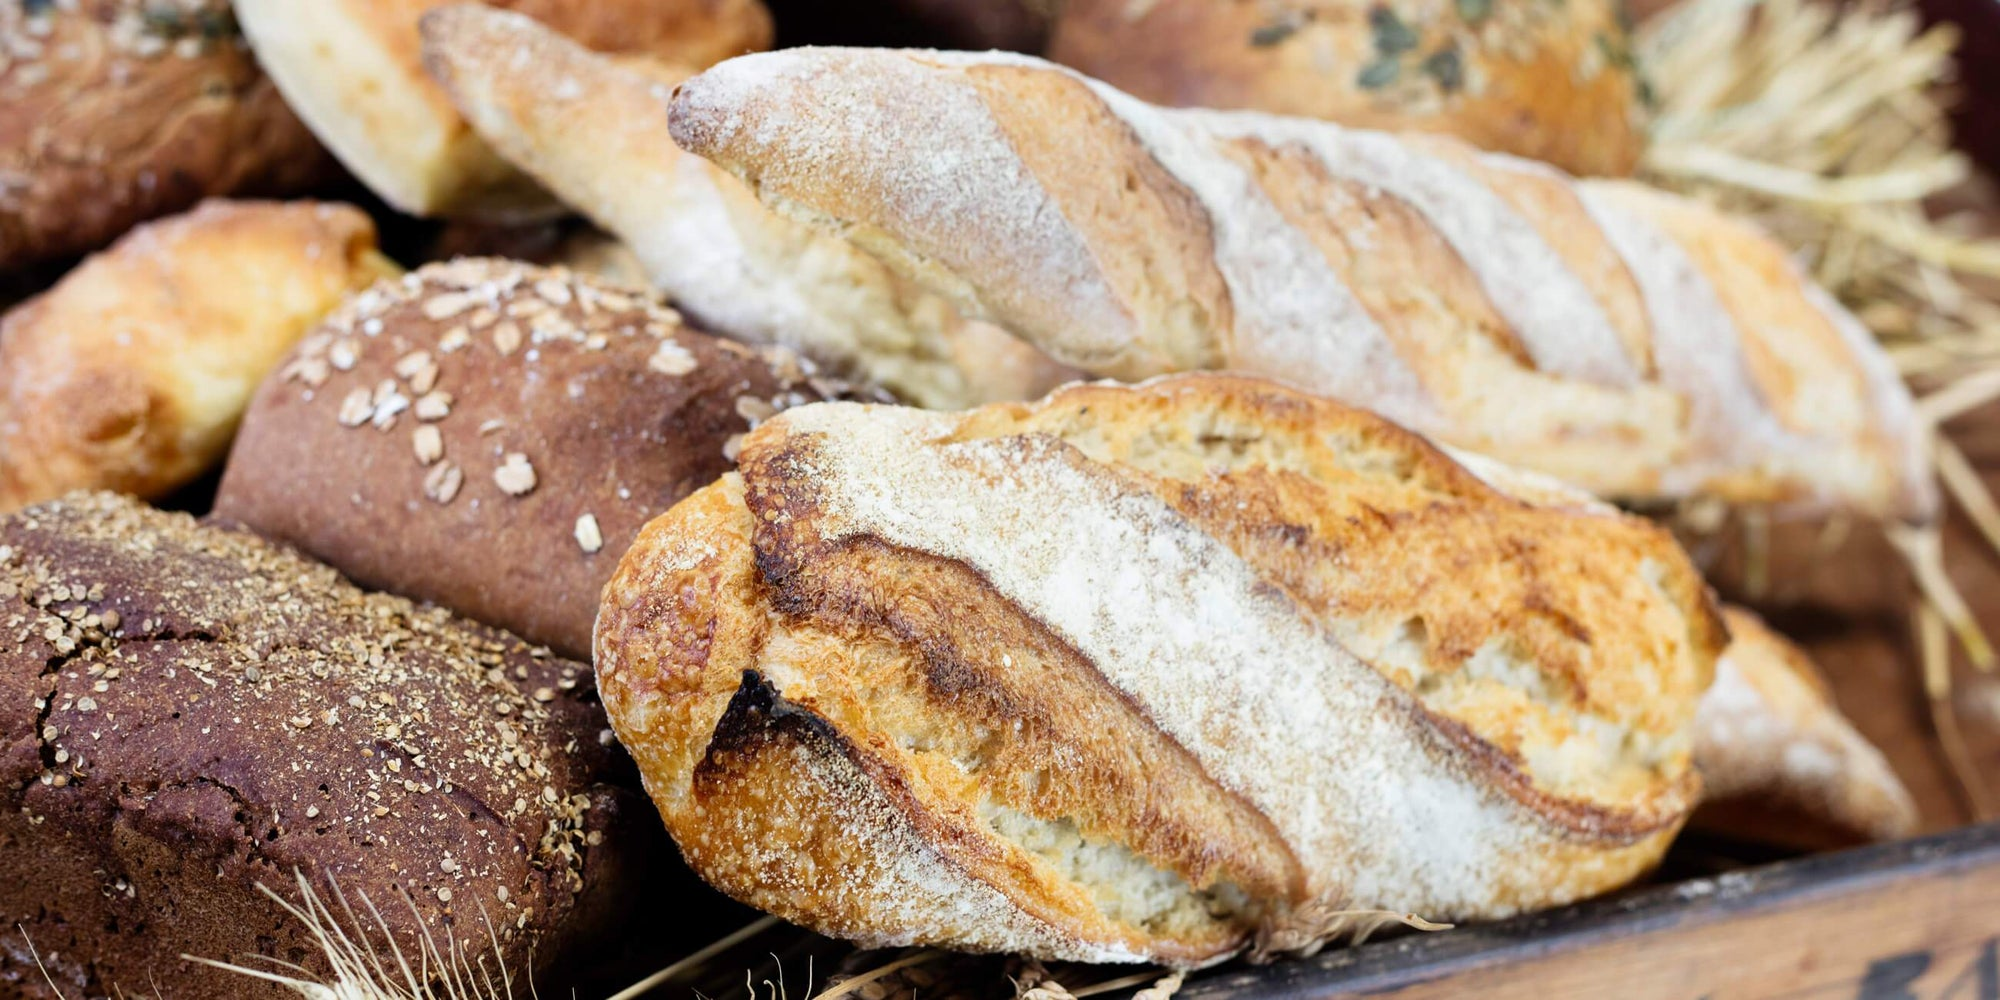 Freshly baked artisan bread by Hambleton Bakery